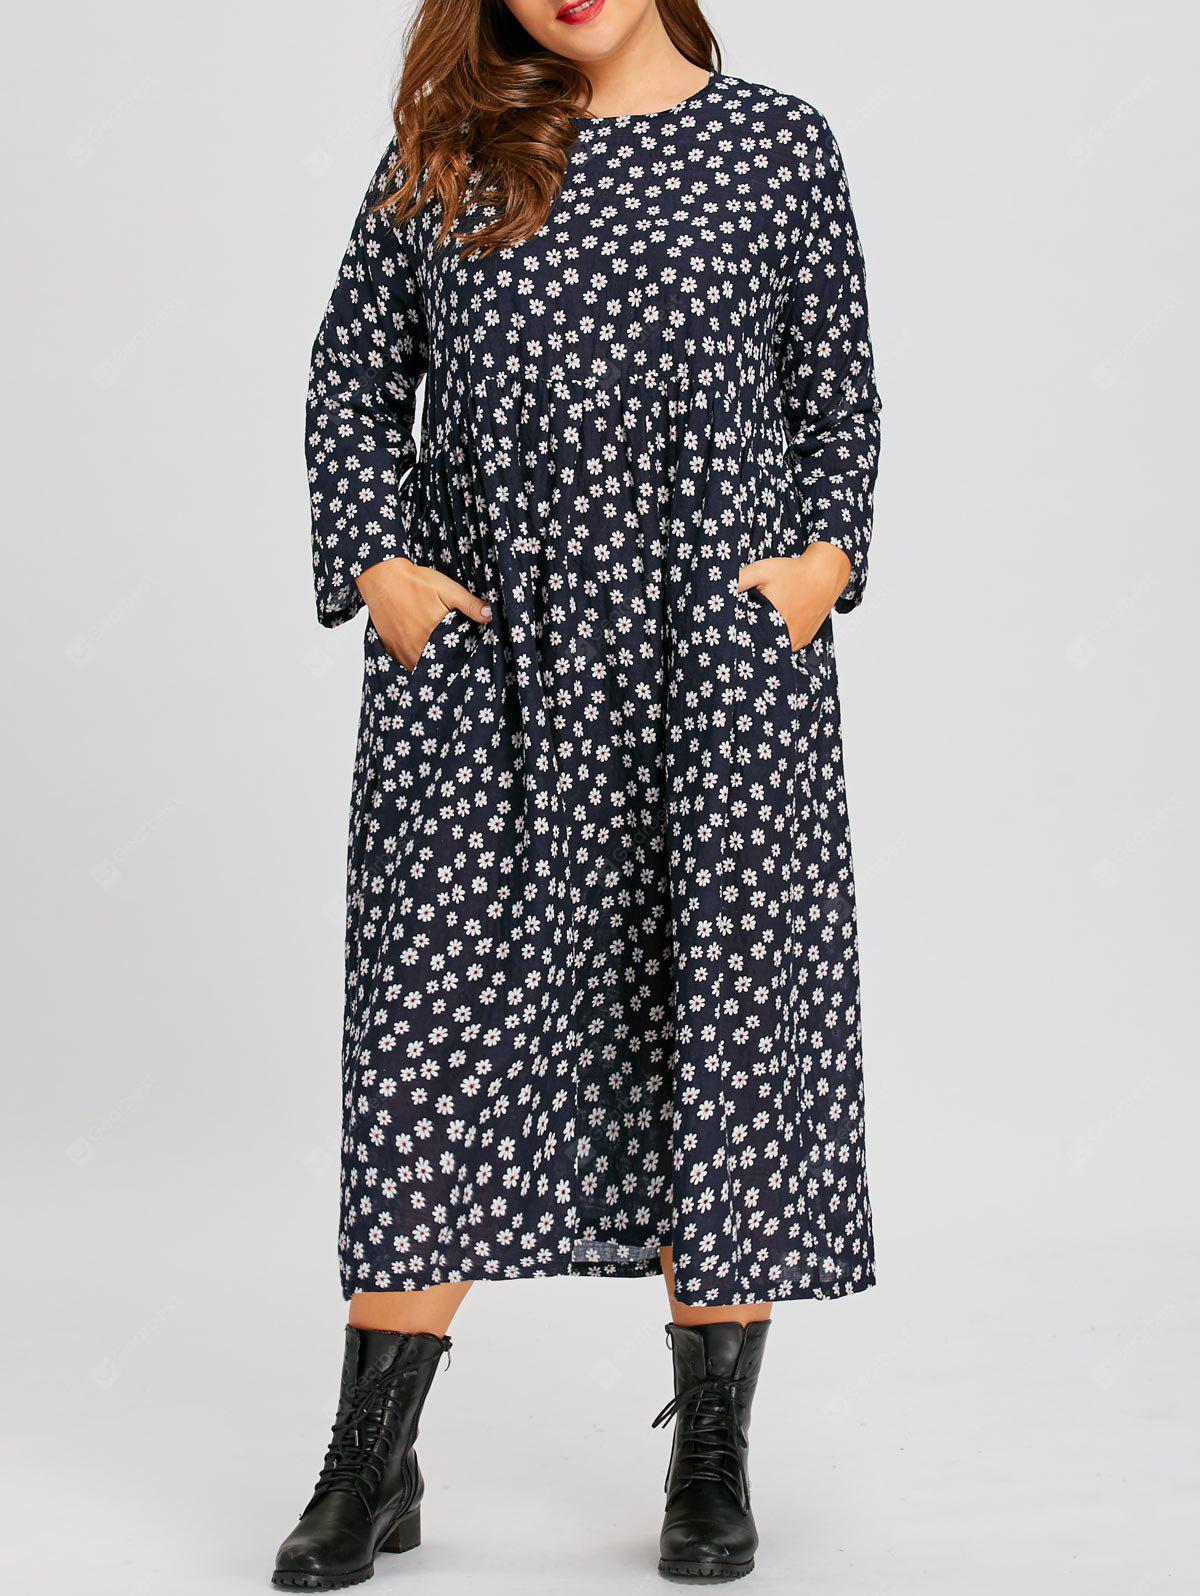 Plus Size Tiny Floral Country Dress with Pockets